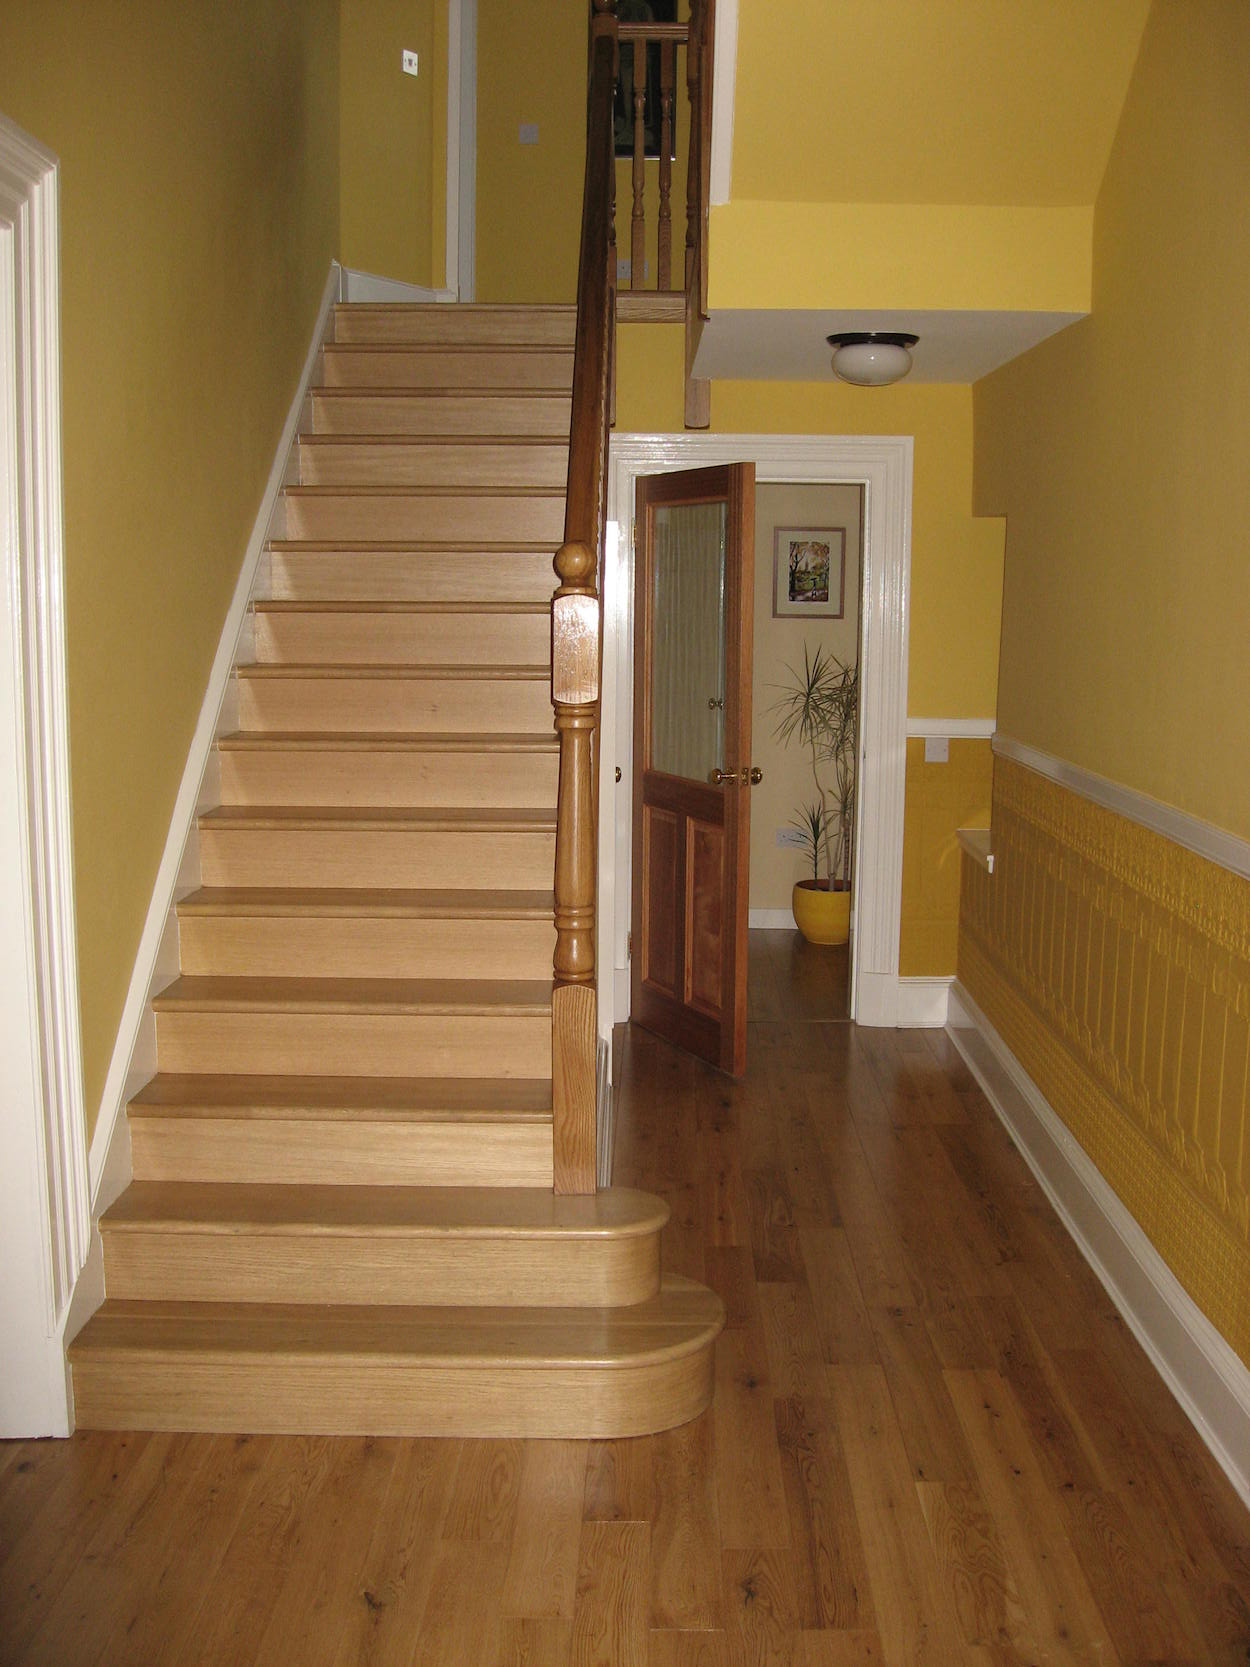 Grand new stair